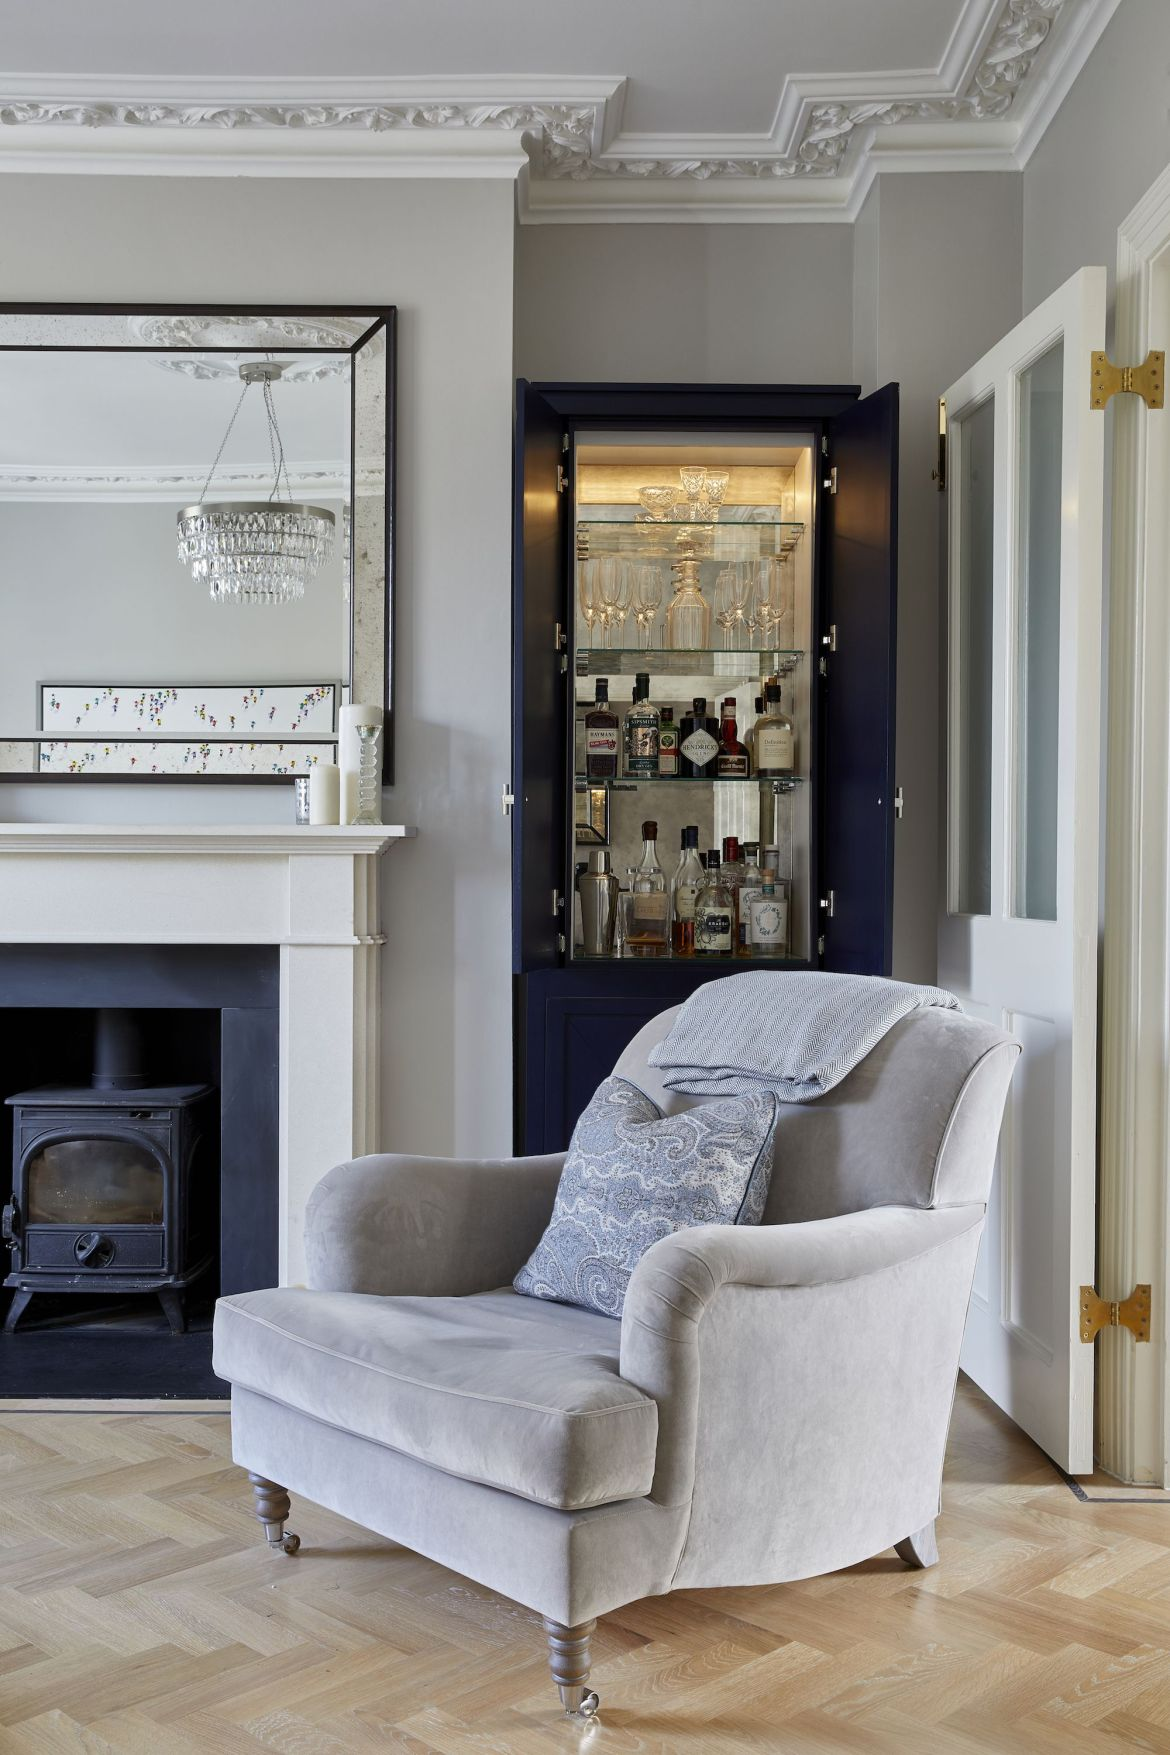 alcove ideas, architecture, interiors, design, interior design